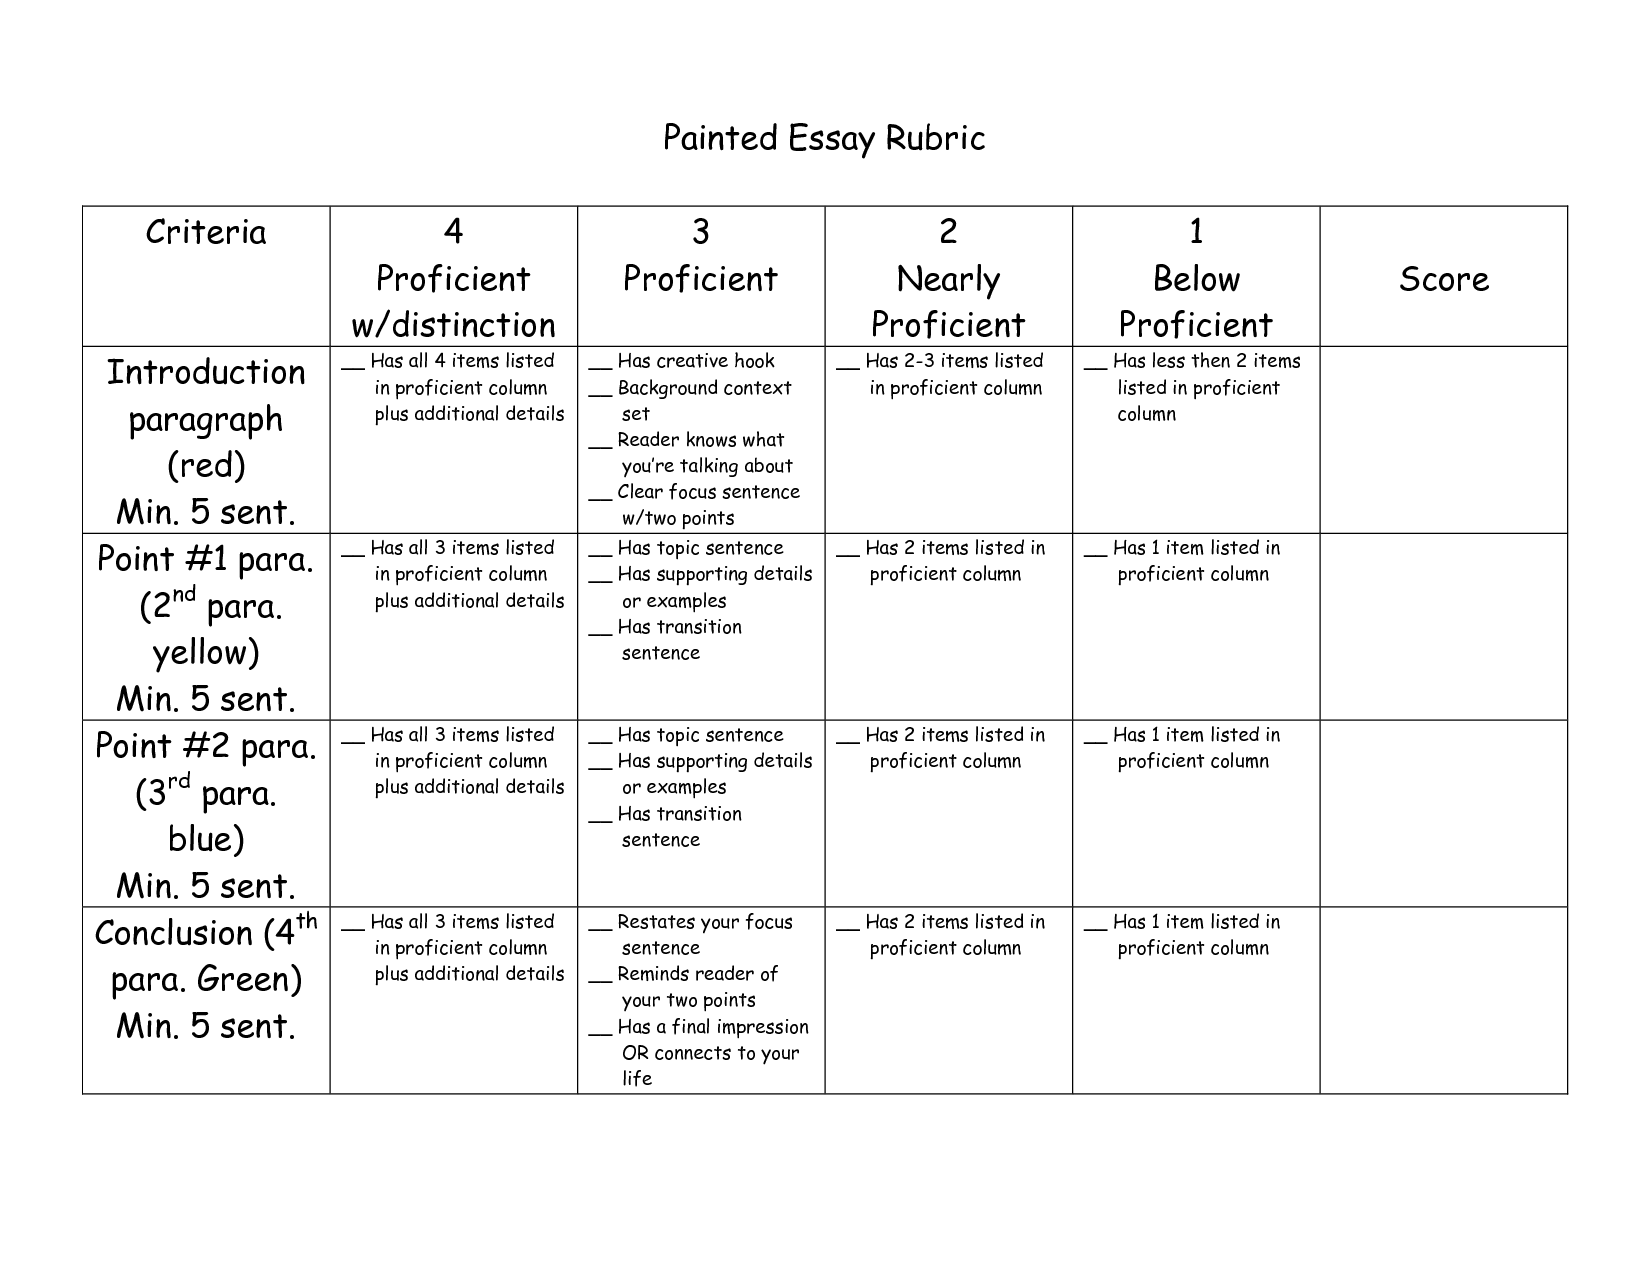 Basic high school essay rubric Term paper Sample - August 2019